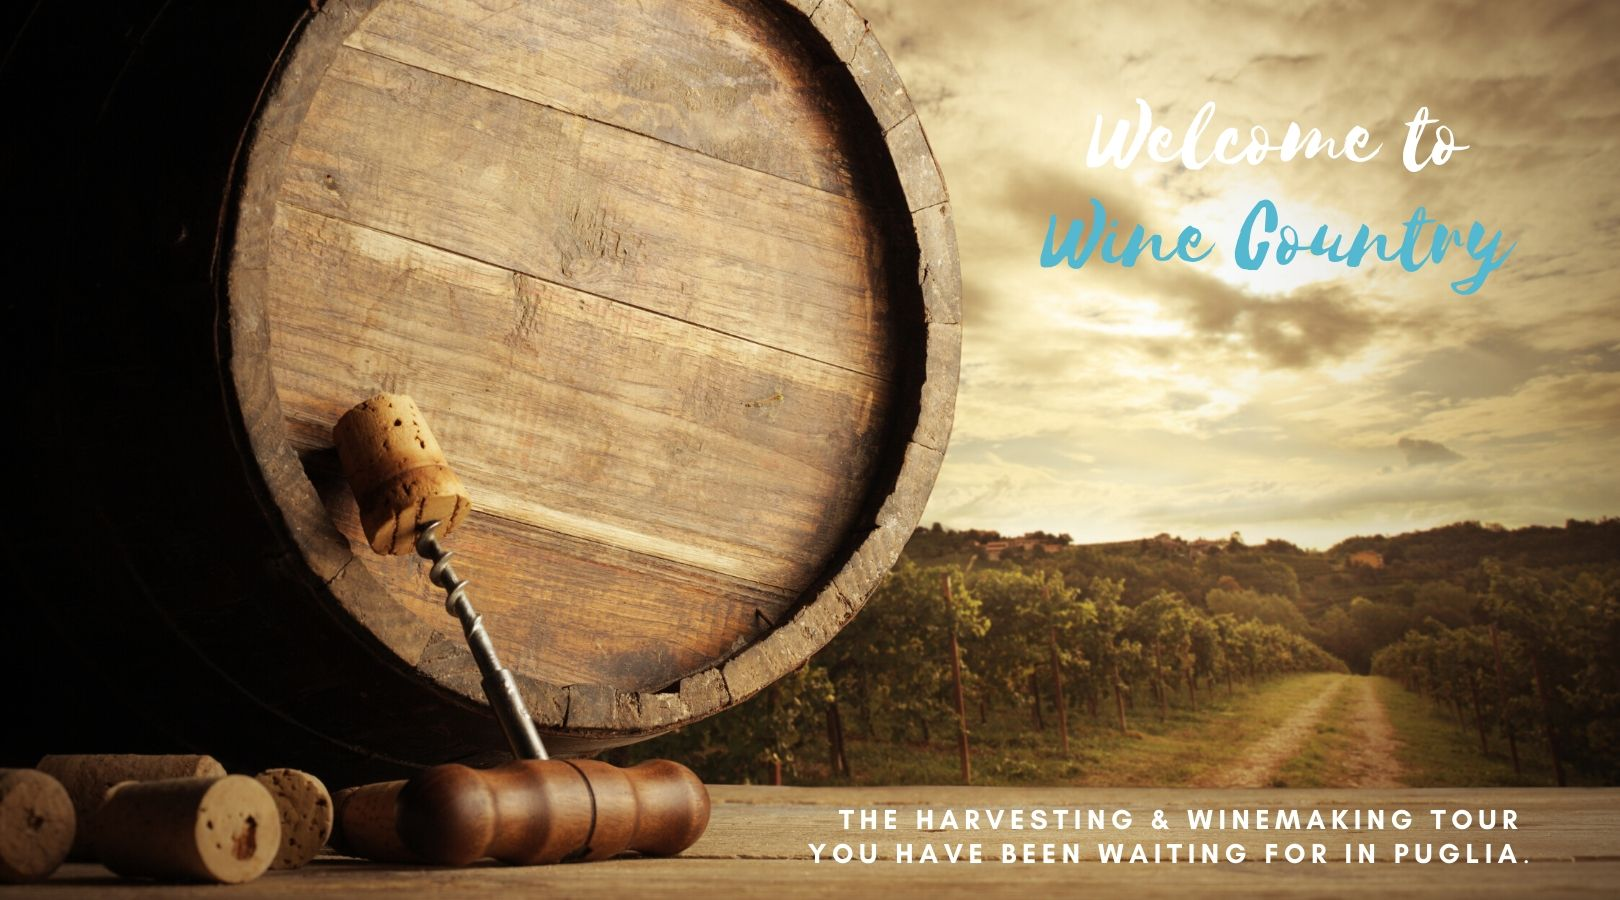 Winemaking Tour by BeeYond Travel